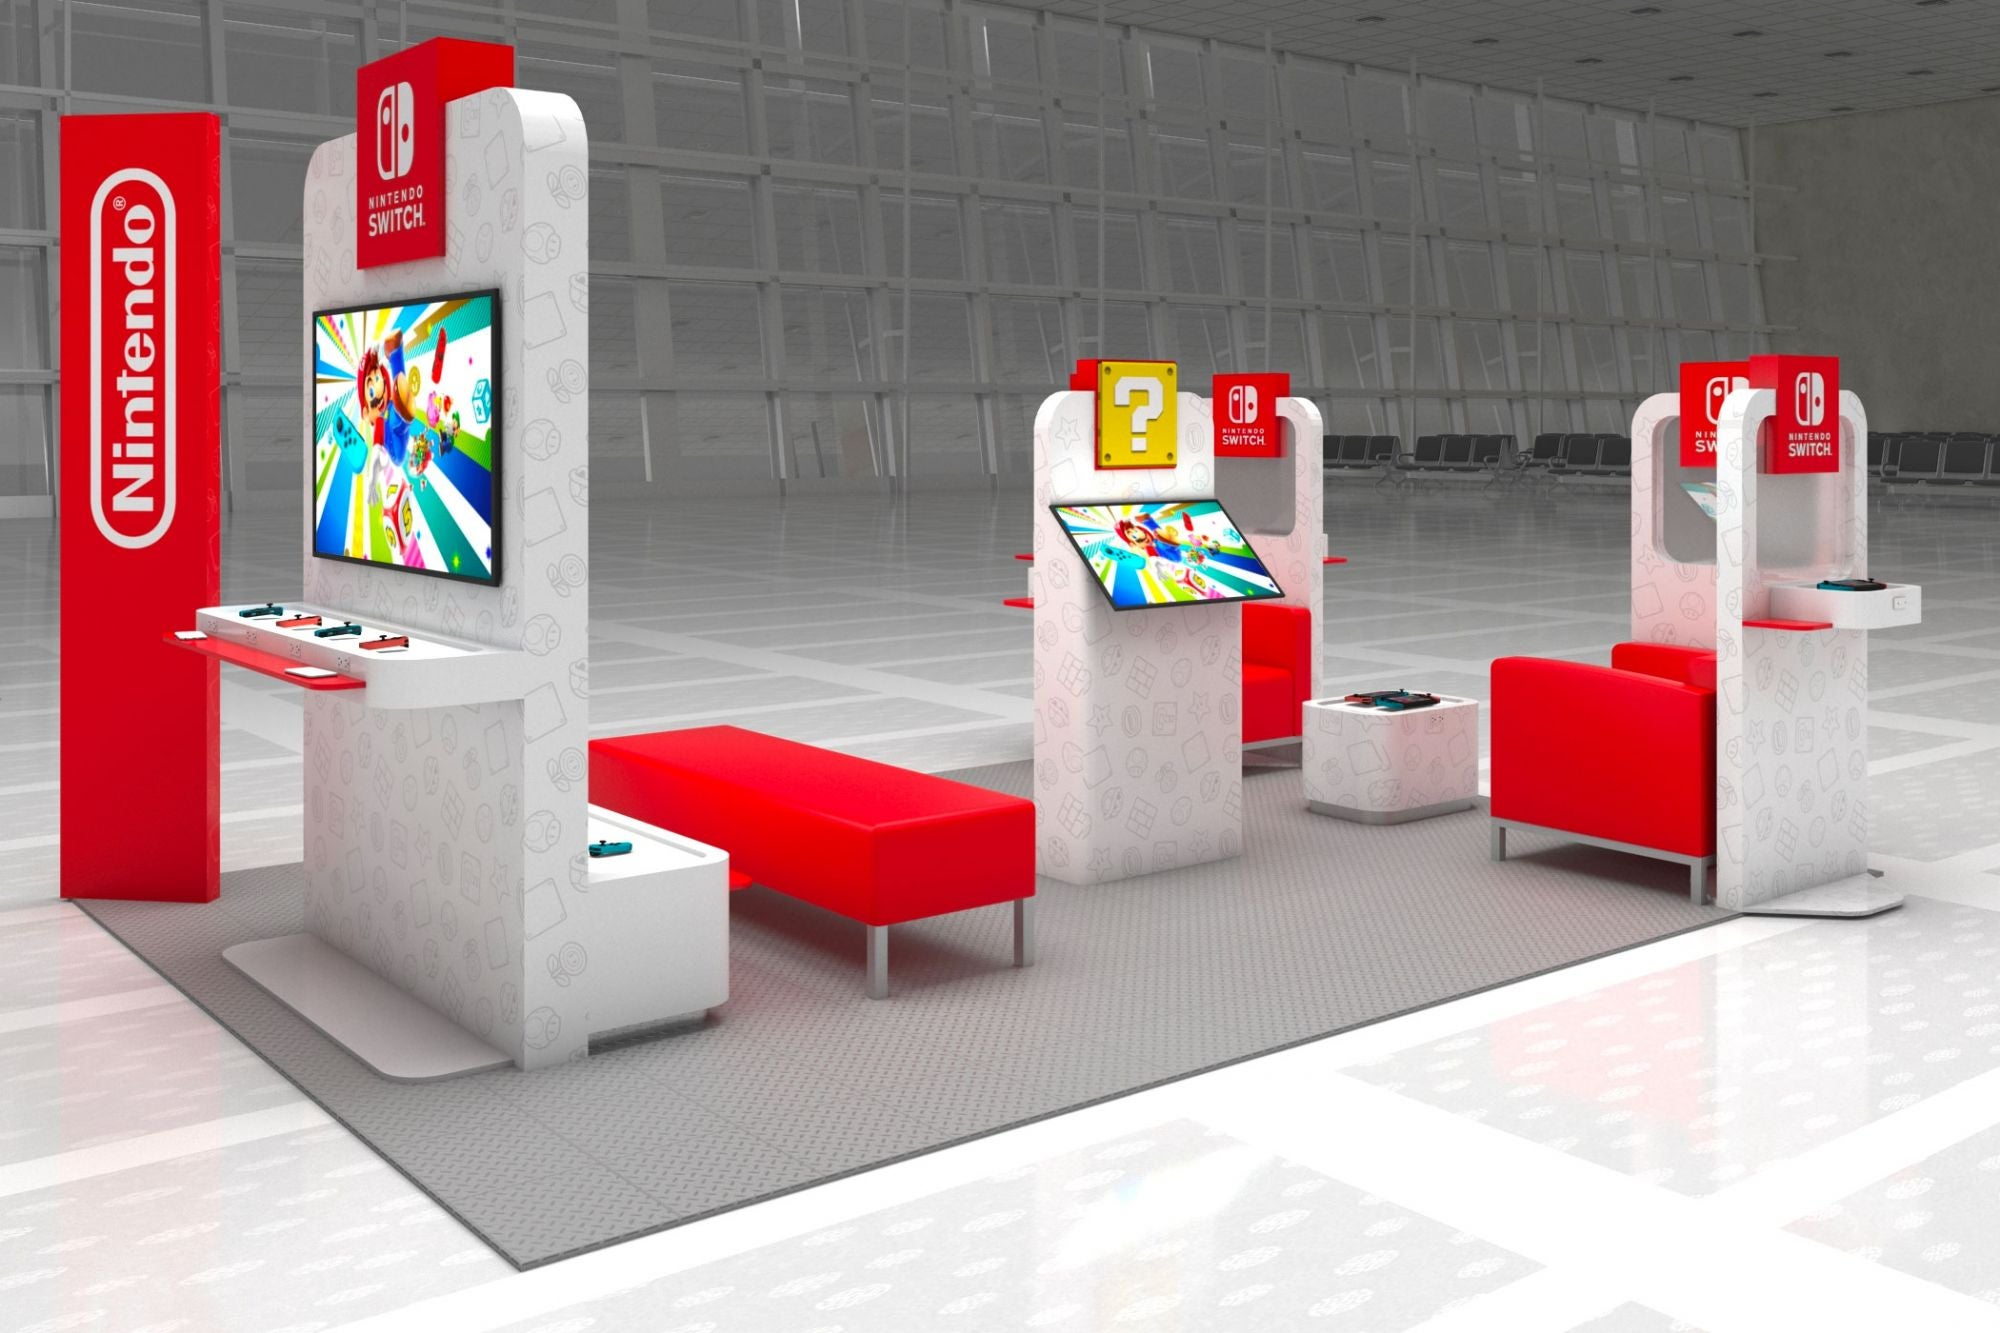 Nintendo is Opening Switch Lounges at U.S. Airports